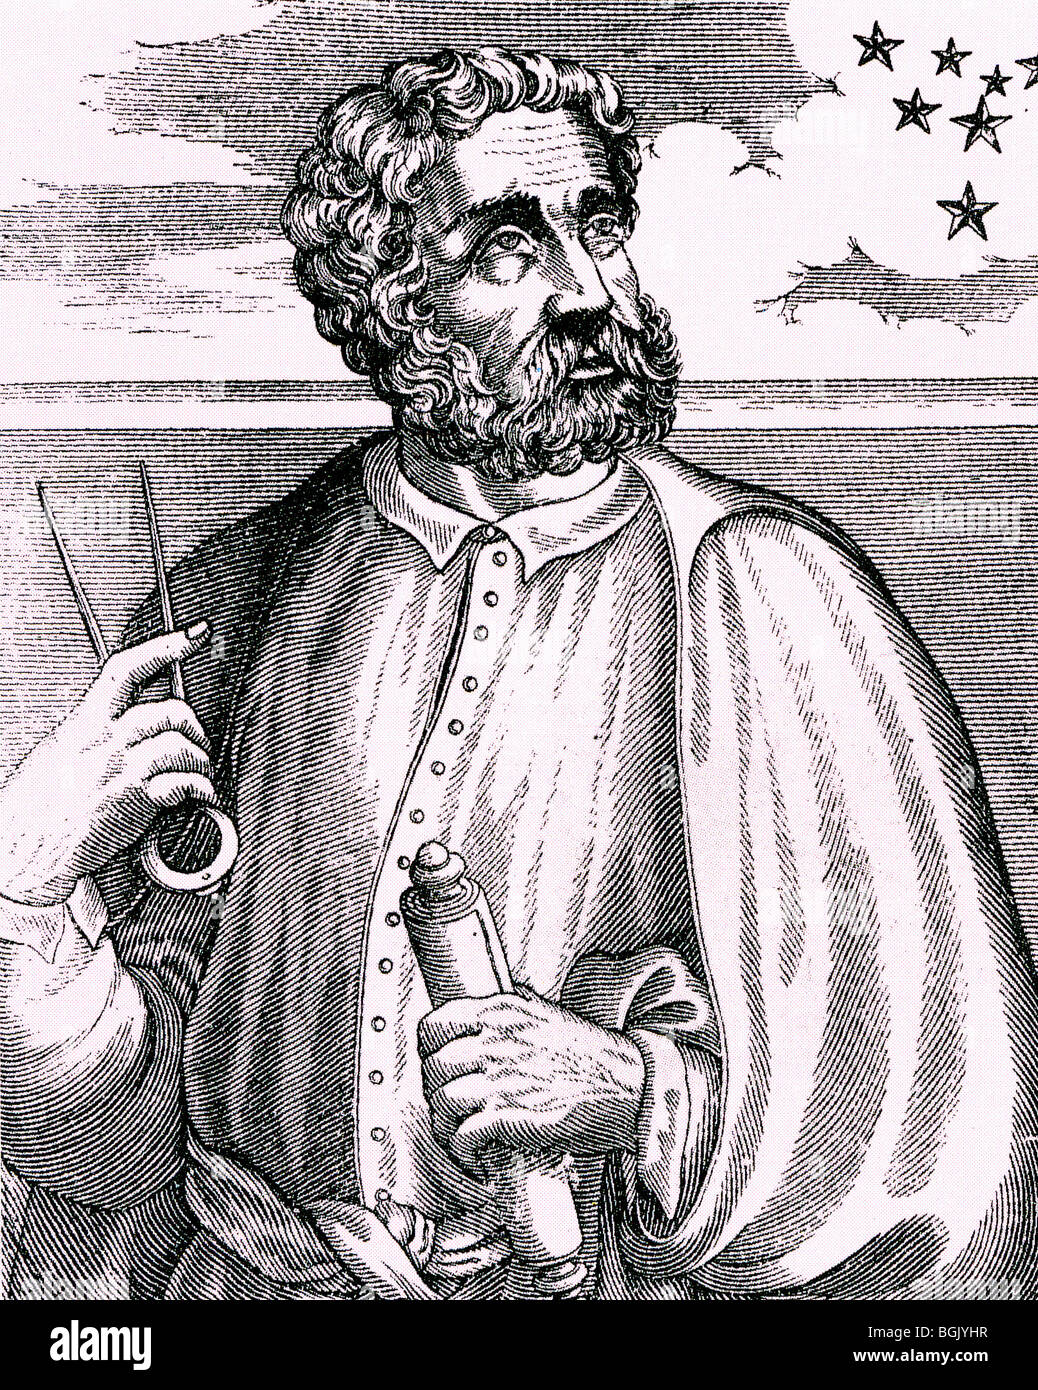 FERDINAND MAGELLAN - Portugese navigator (c 1480-1521) looking at the Southern Cross in a 16th century engraving - Stock Image